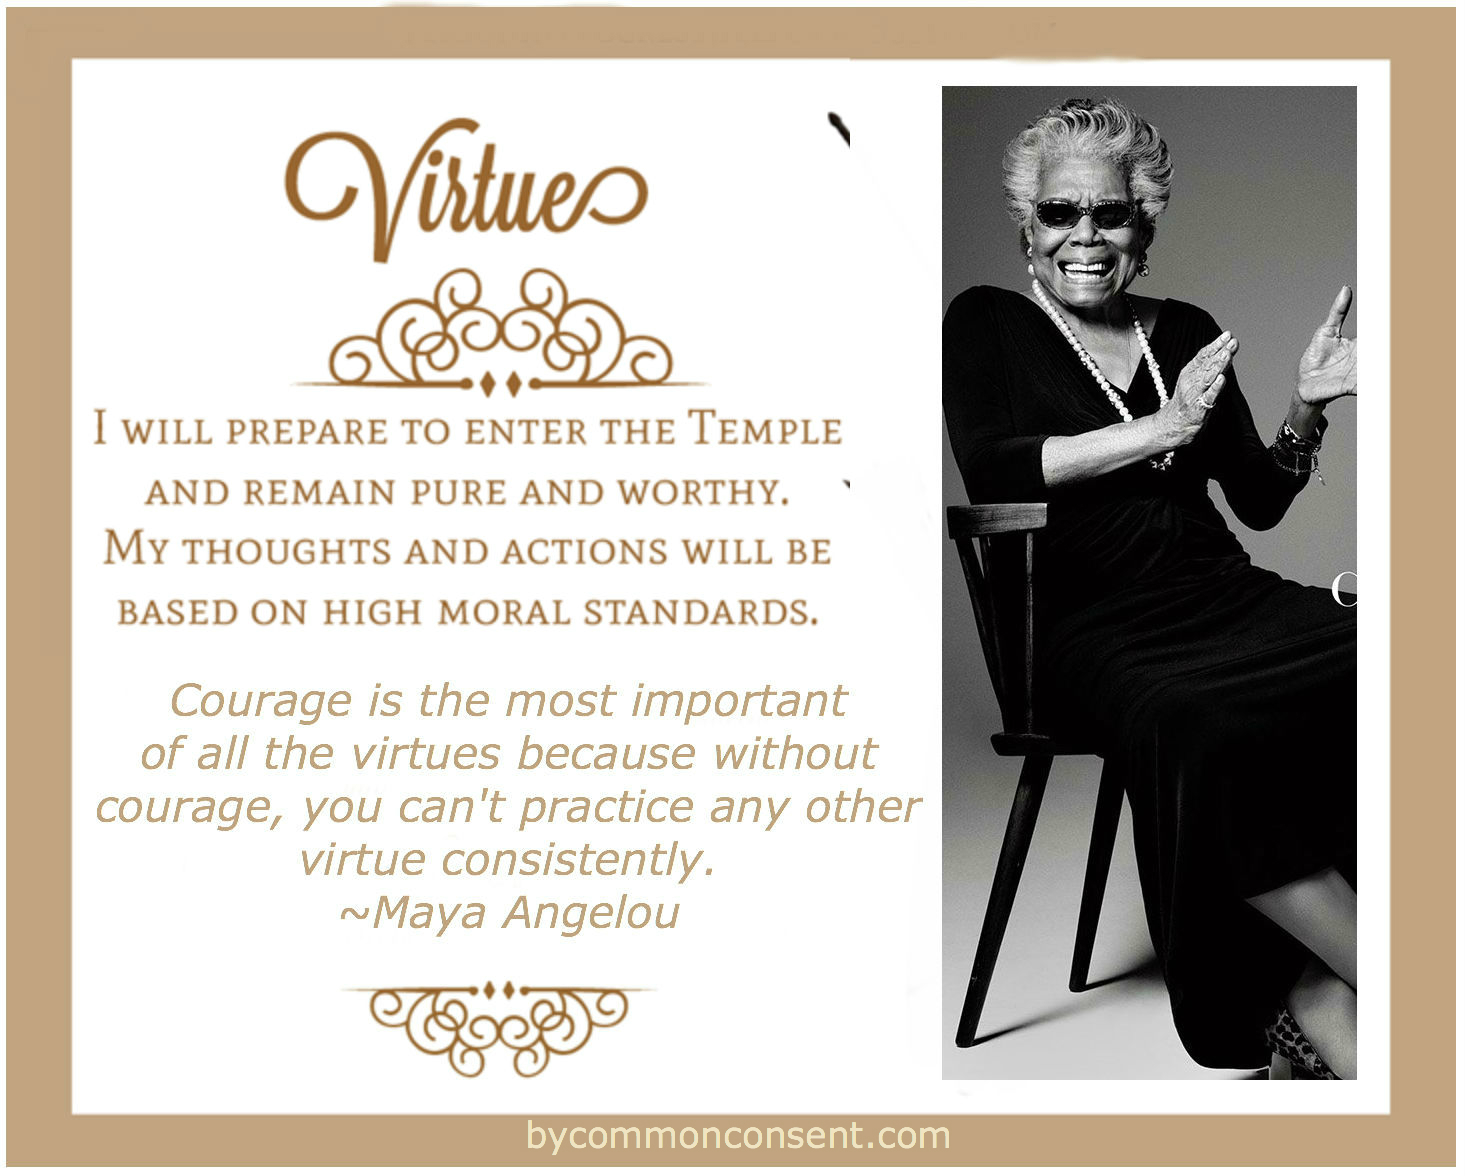 mayaangelou_virtue1 young women values not princesses & not for the faint of heart